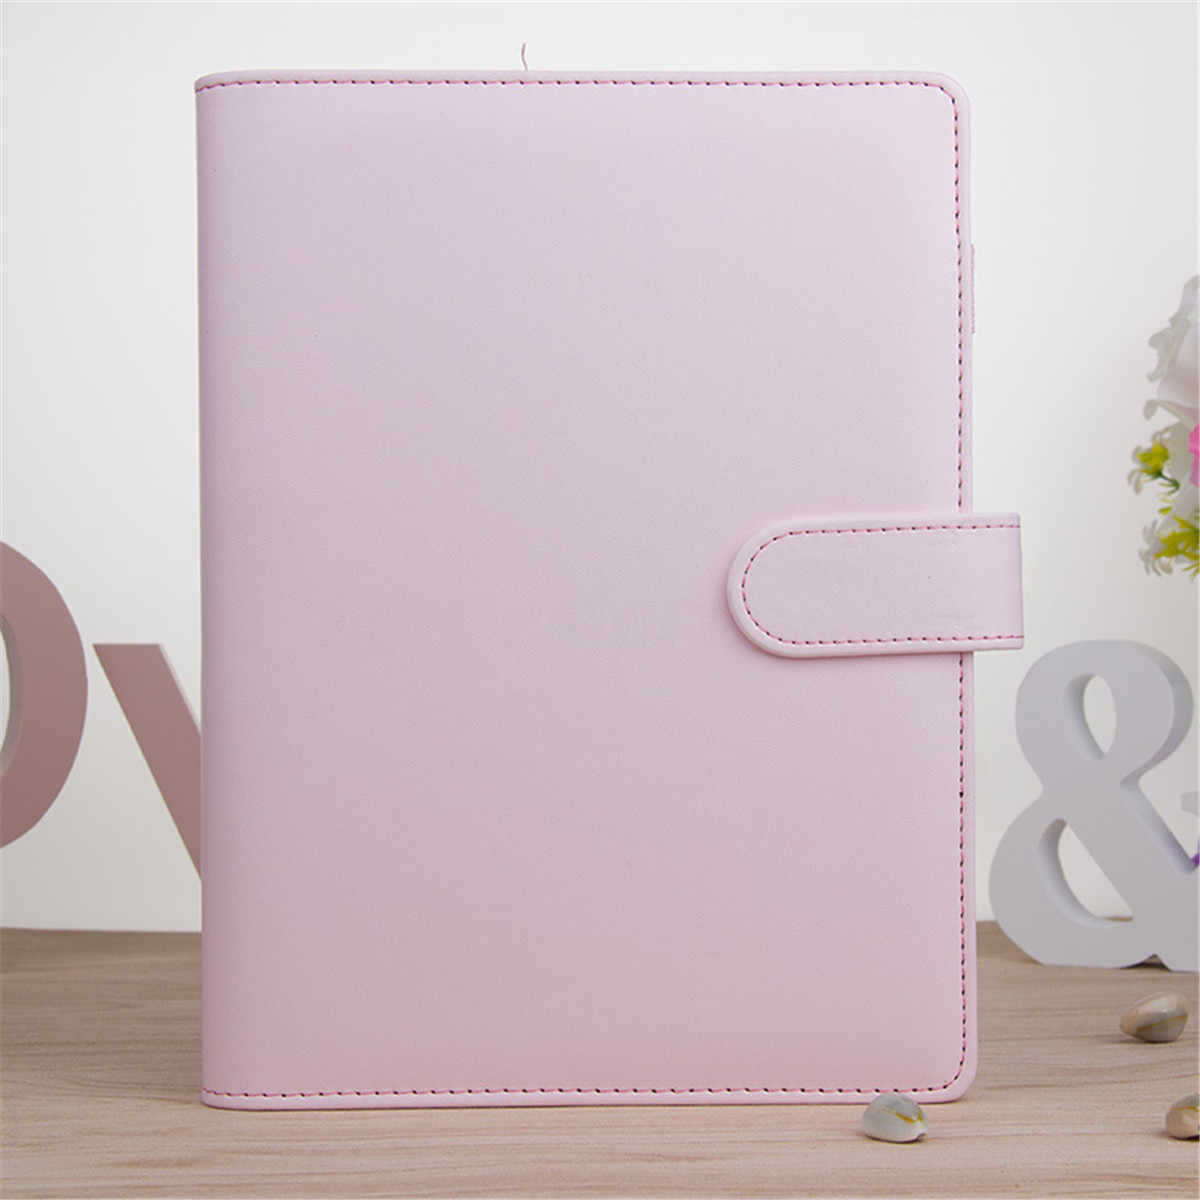 A5 Mingguan Bulanan Planner Diary Klasik Loose-Leaf Ring Binder Notebook Cover Pink